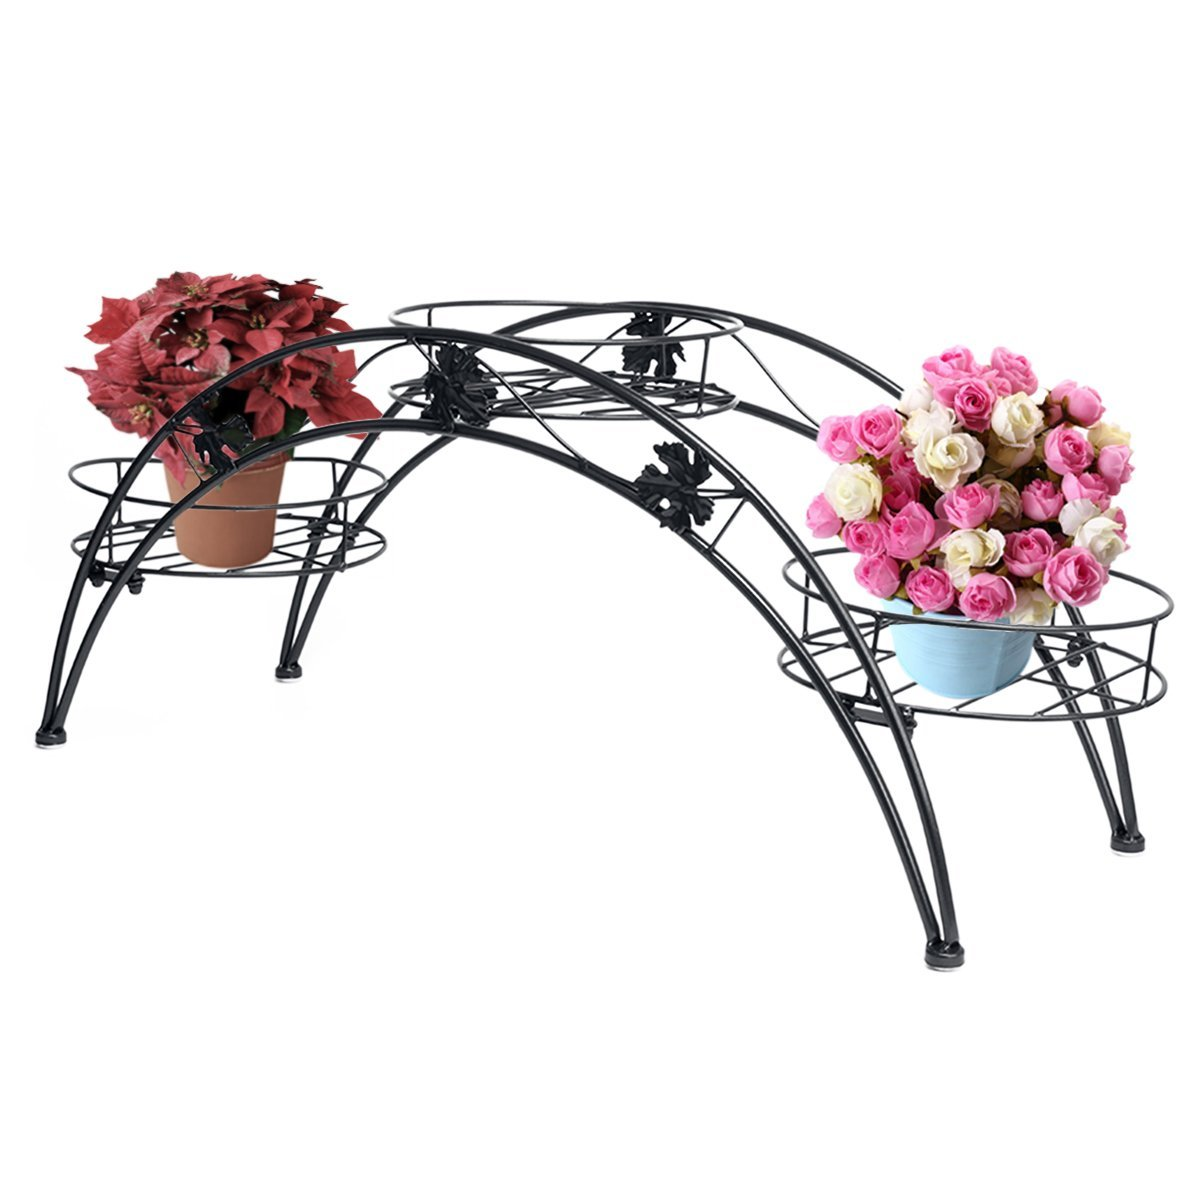 Dazone Metal-made Arched Design Potted Plant Rack with 3 Holders Plant Stand (black) by Dazone